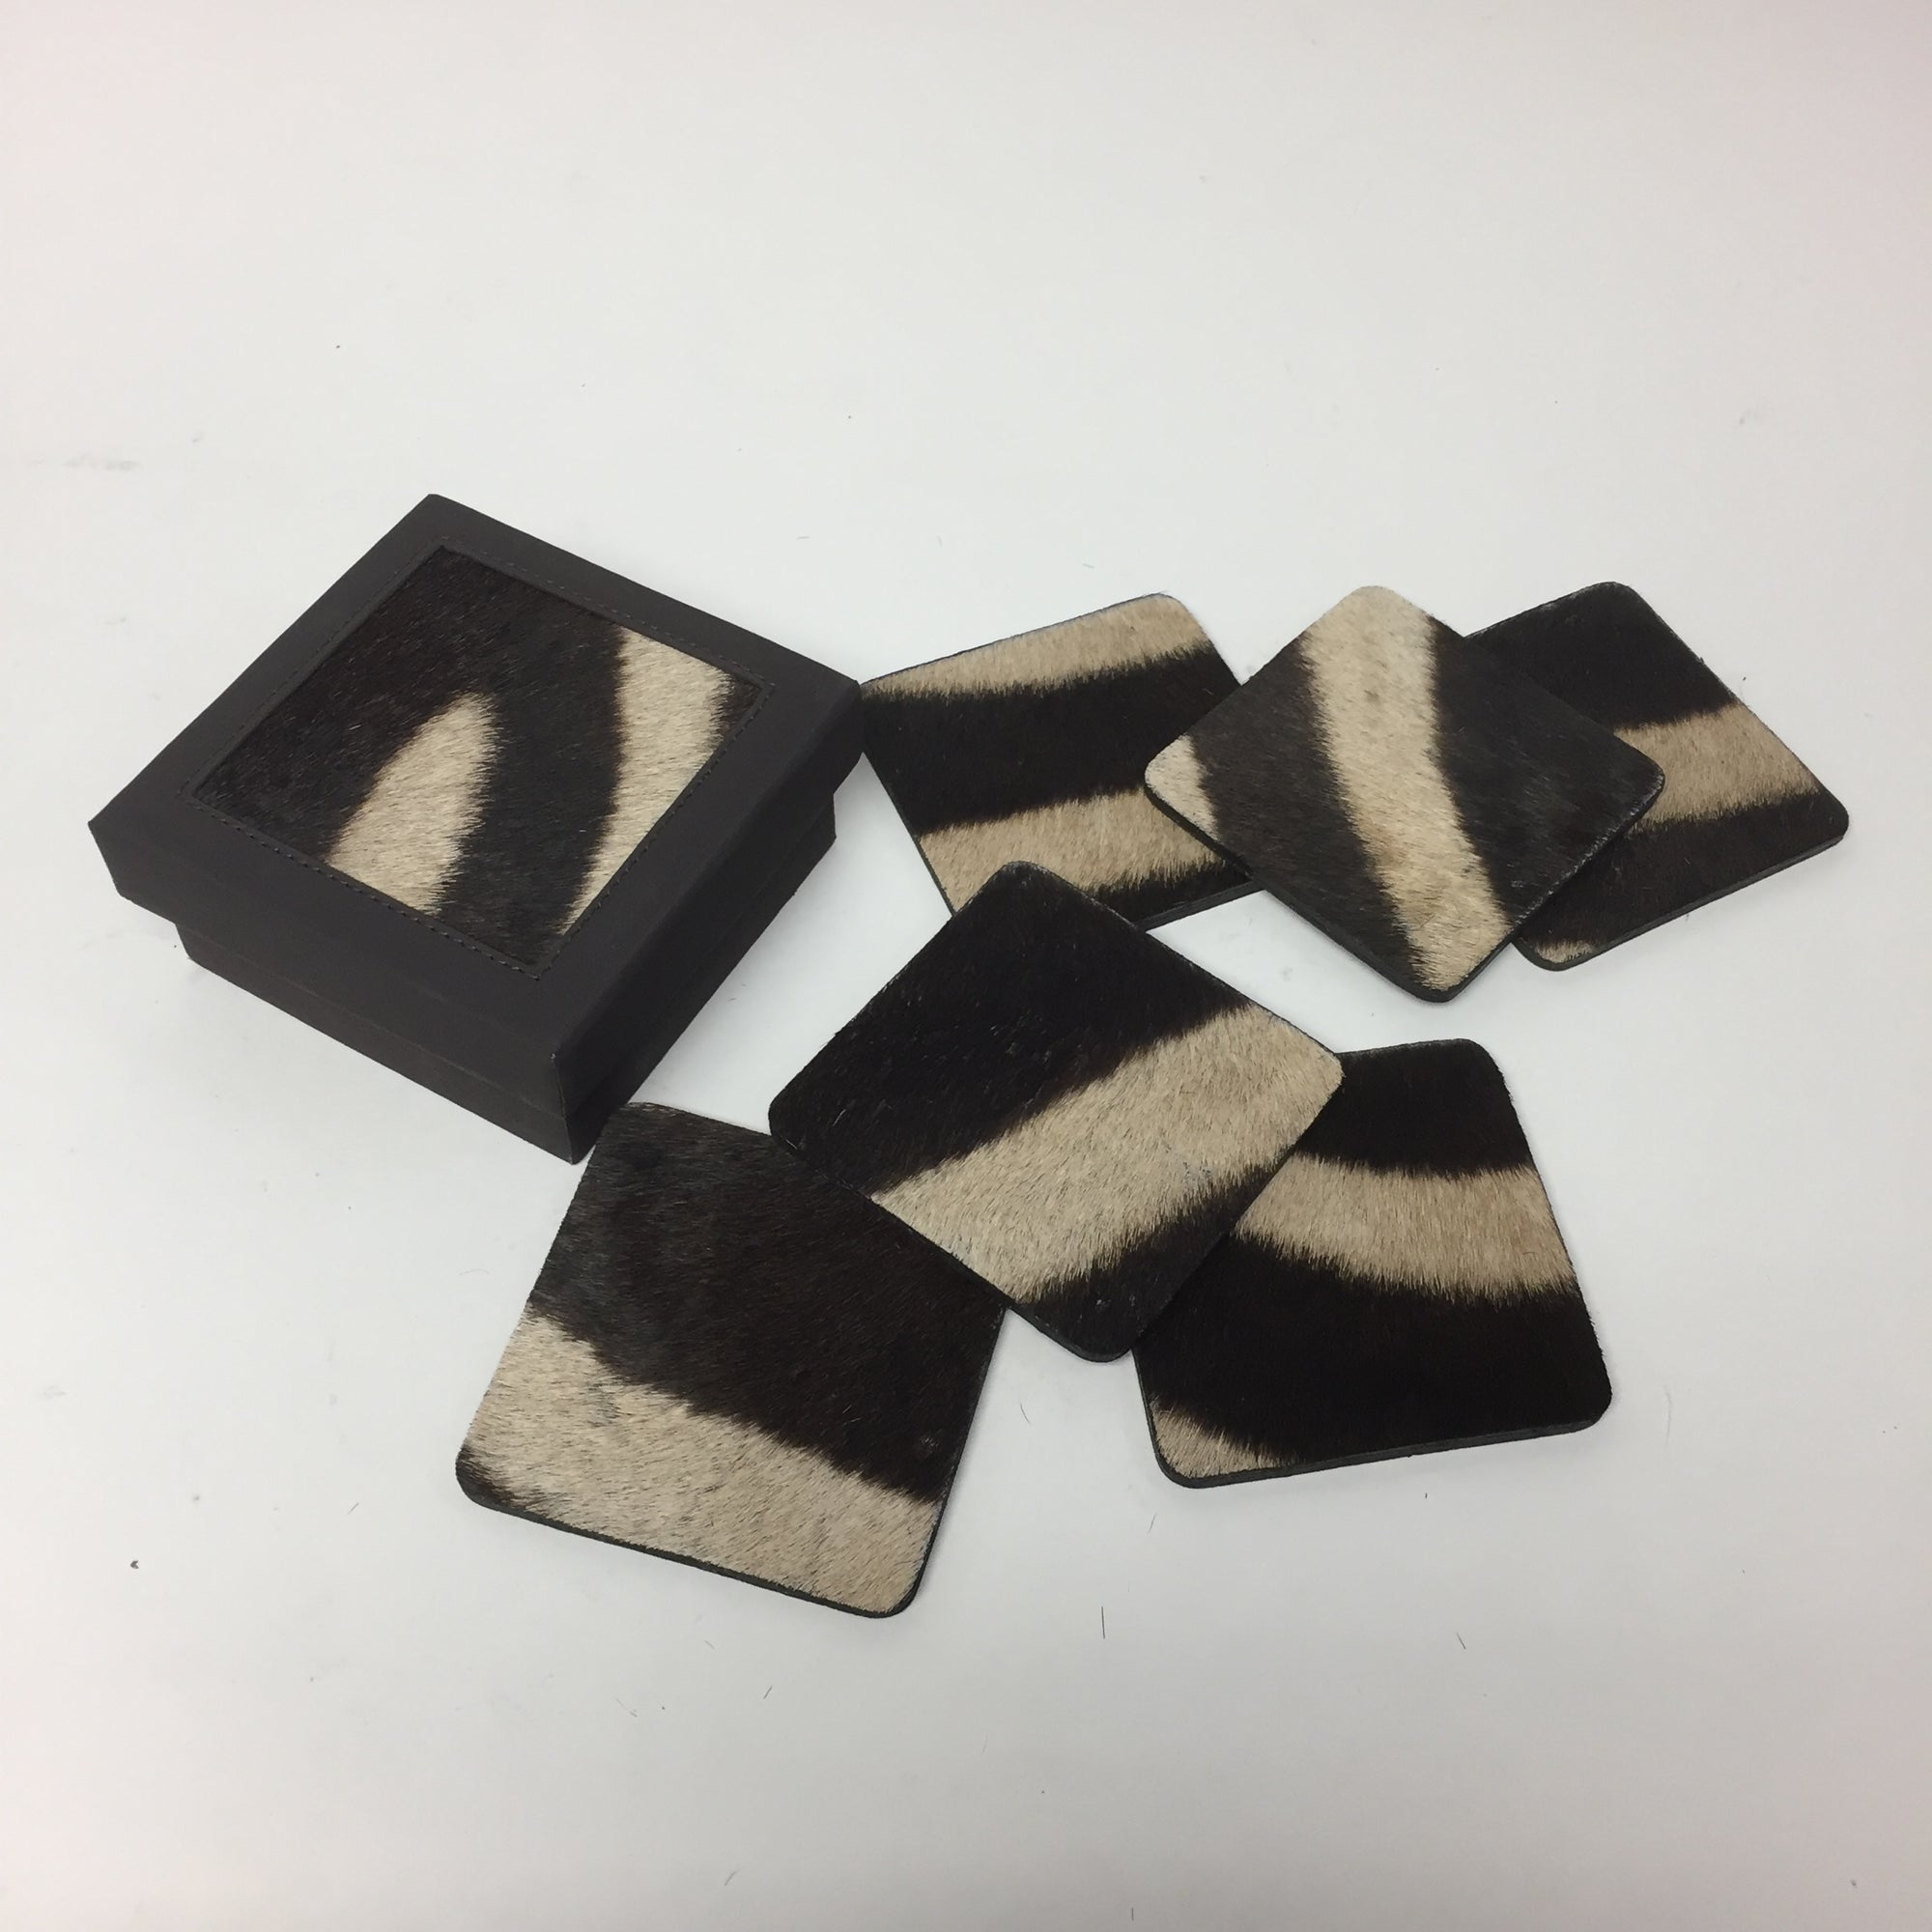 Zebra Skin Coasters in Box